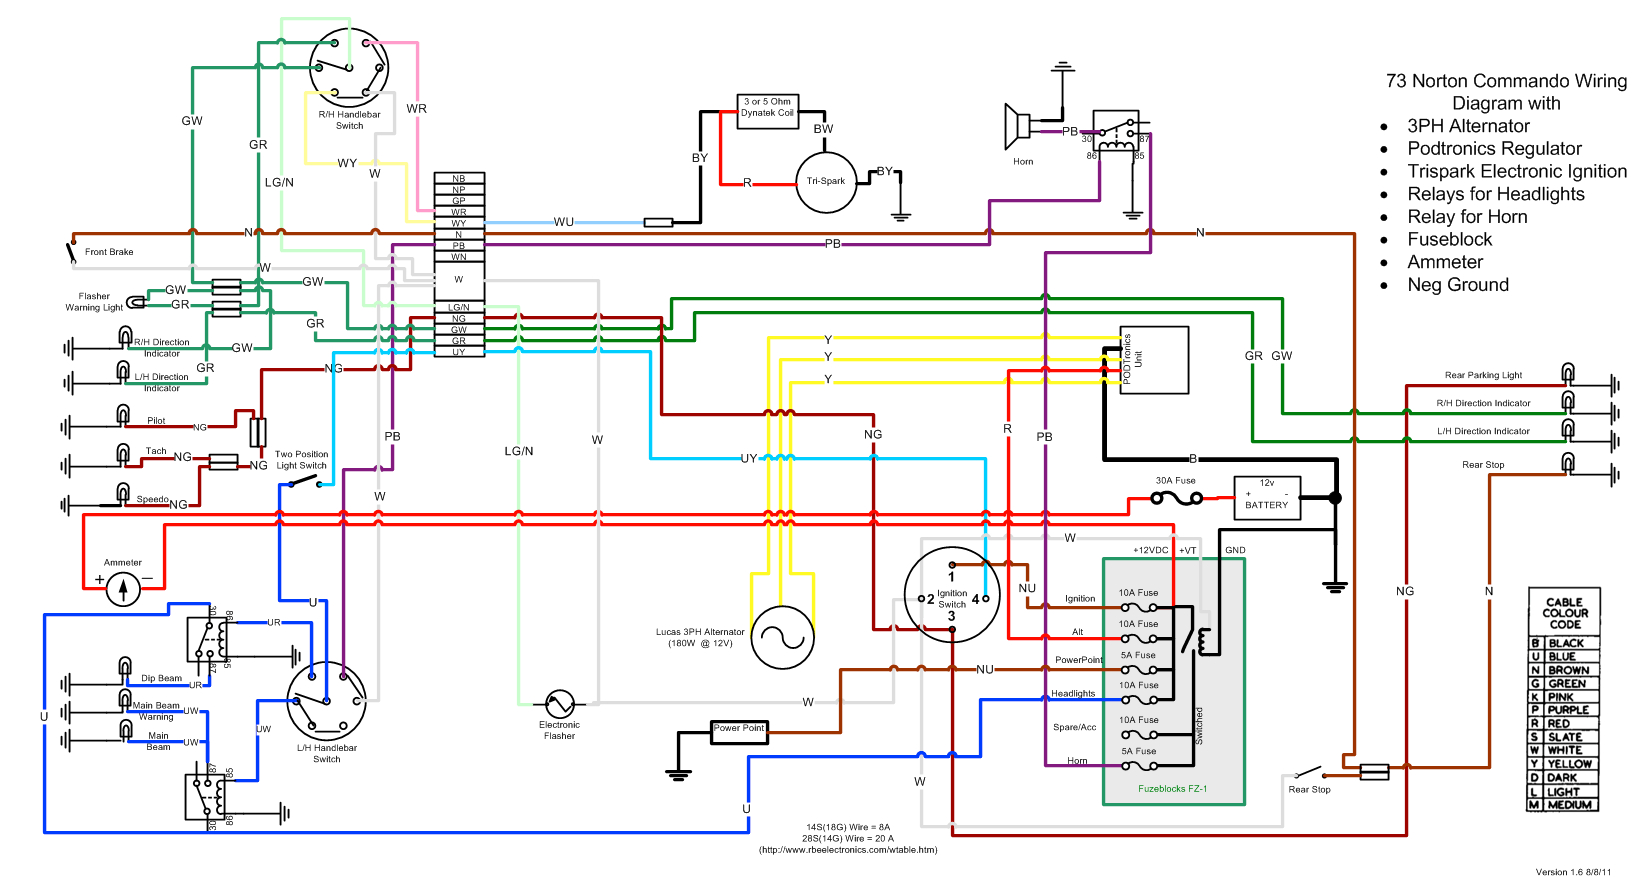 Schematic Nest Hello Wiring Diagram from wholefoodsonabudget.com